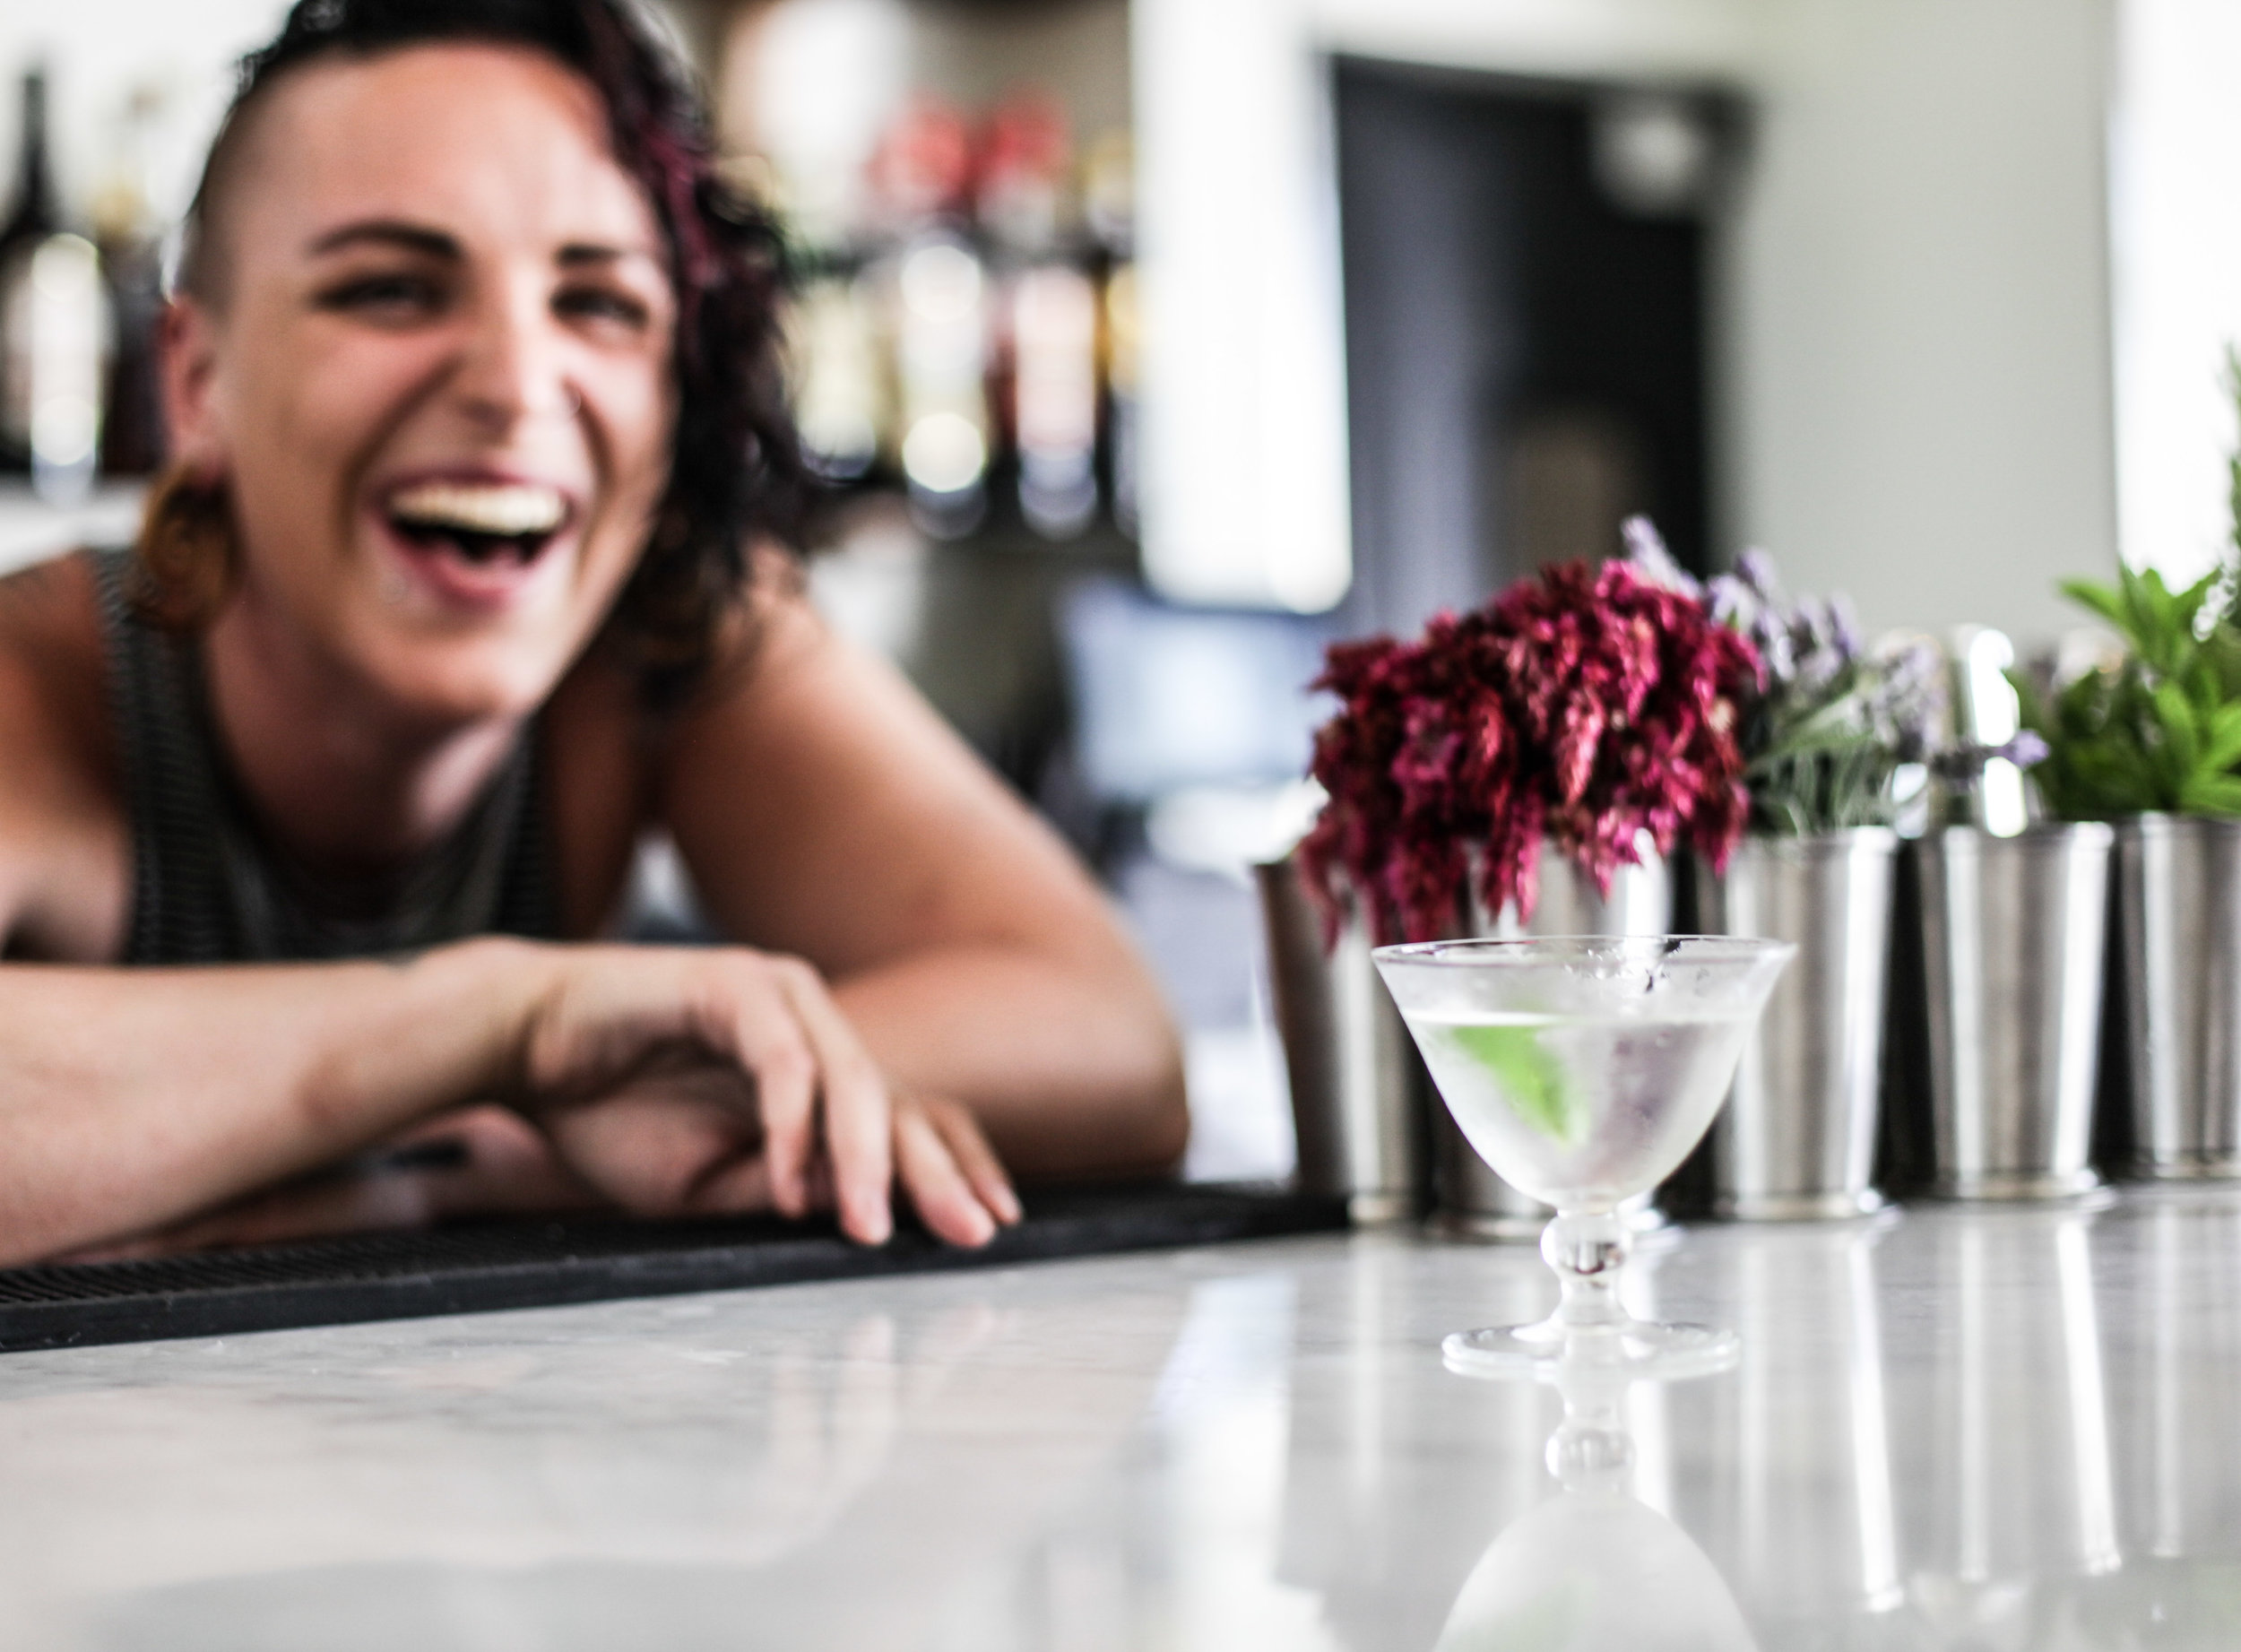 """""""Their spoons move like a dream in their mixing glass. Their products are a must for any bar"""" - Ren Perakis, Bar Manager / Consultant"""